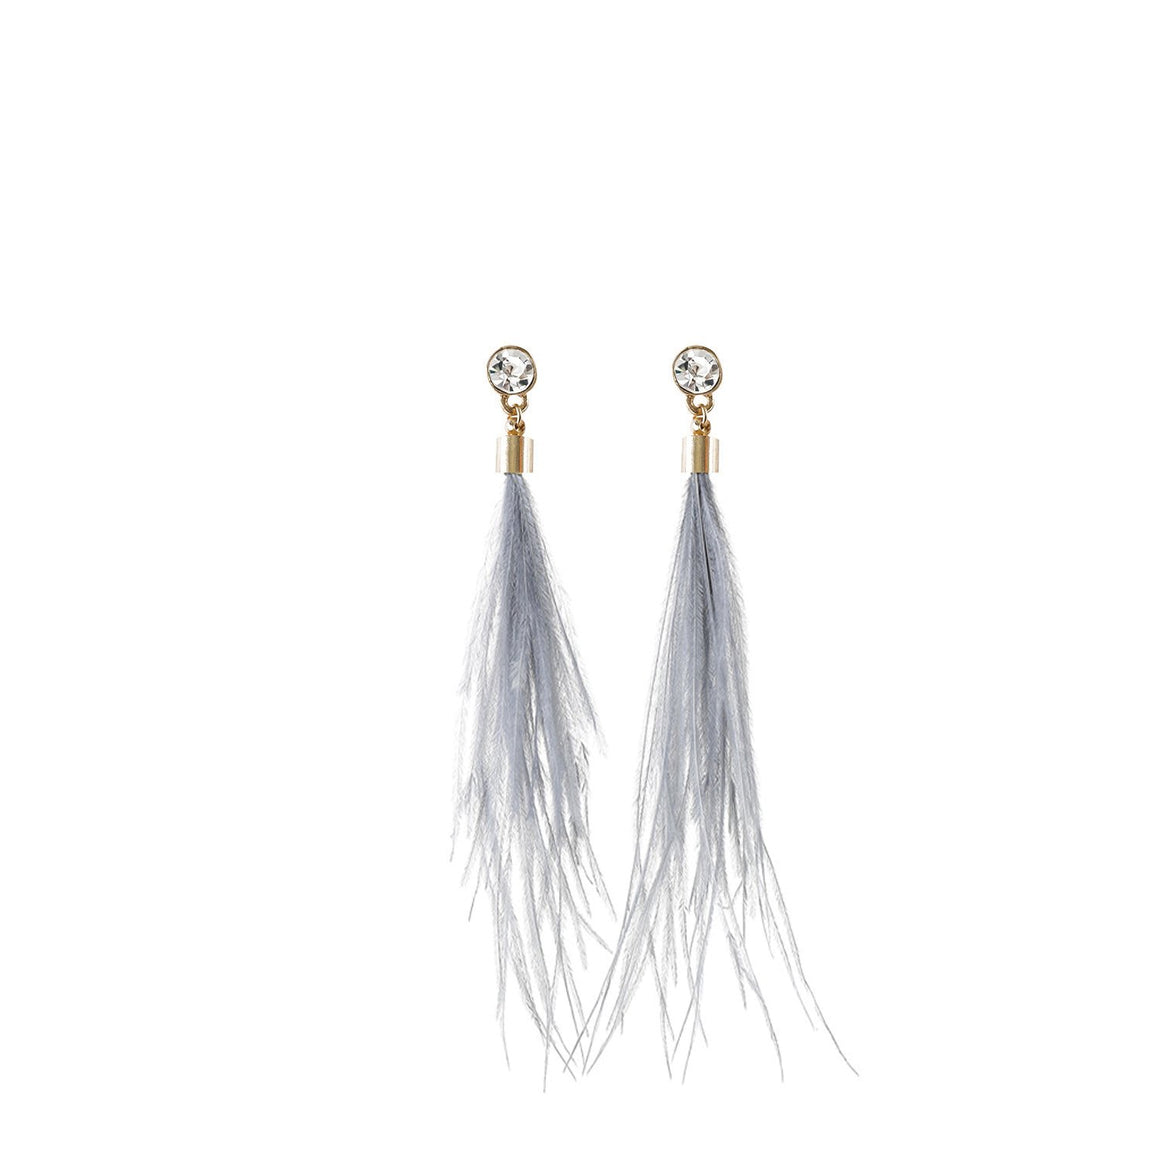 Marin Earrings